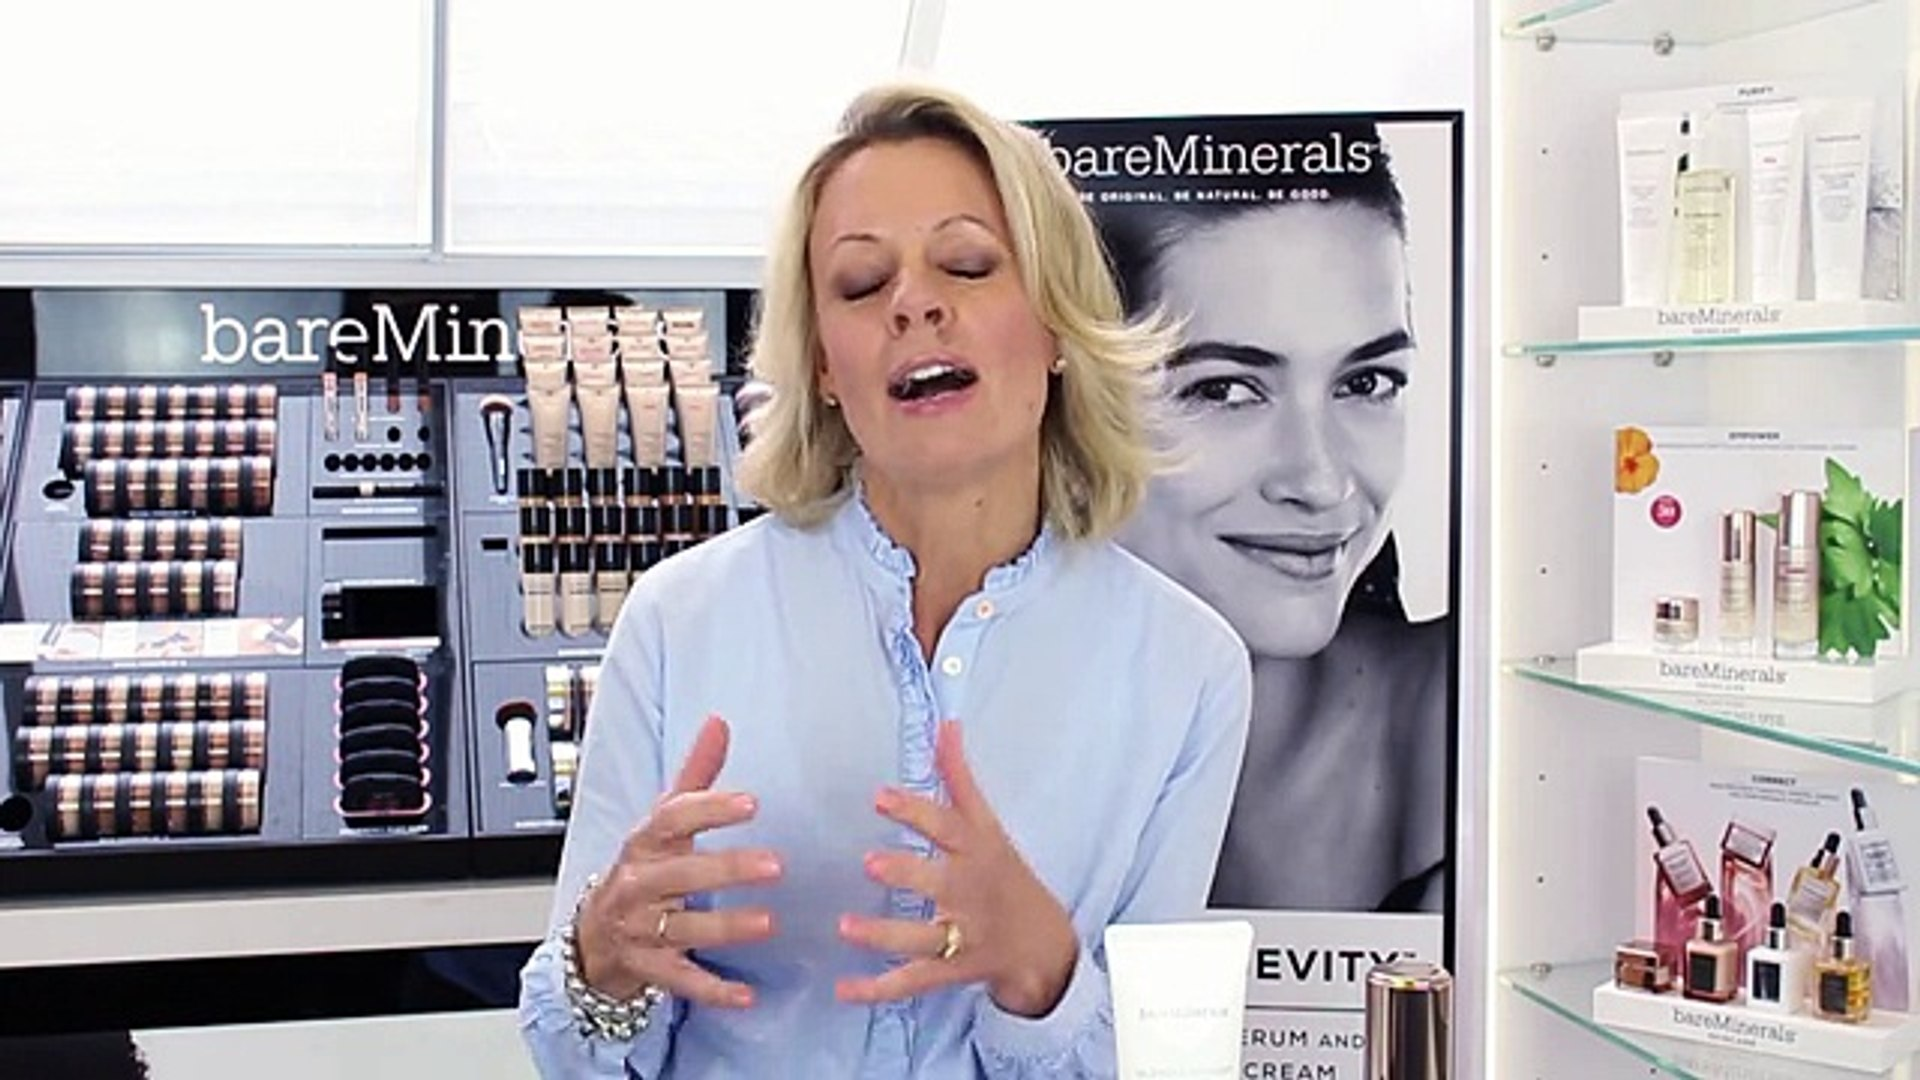 How To Skincare Routine for Radiant Skin  bareMinerals